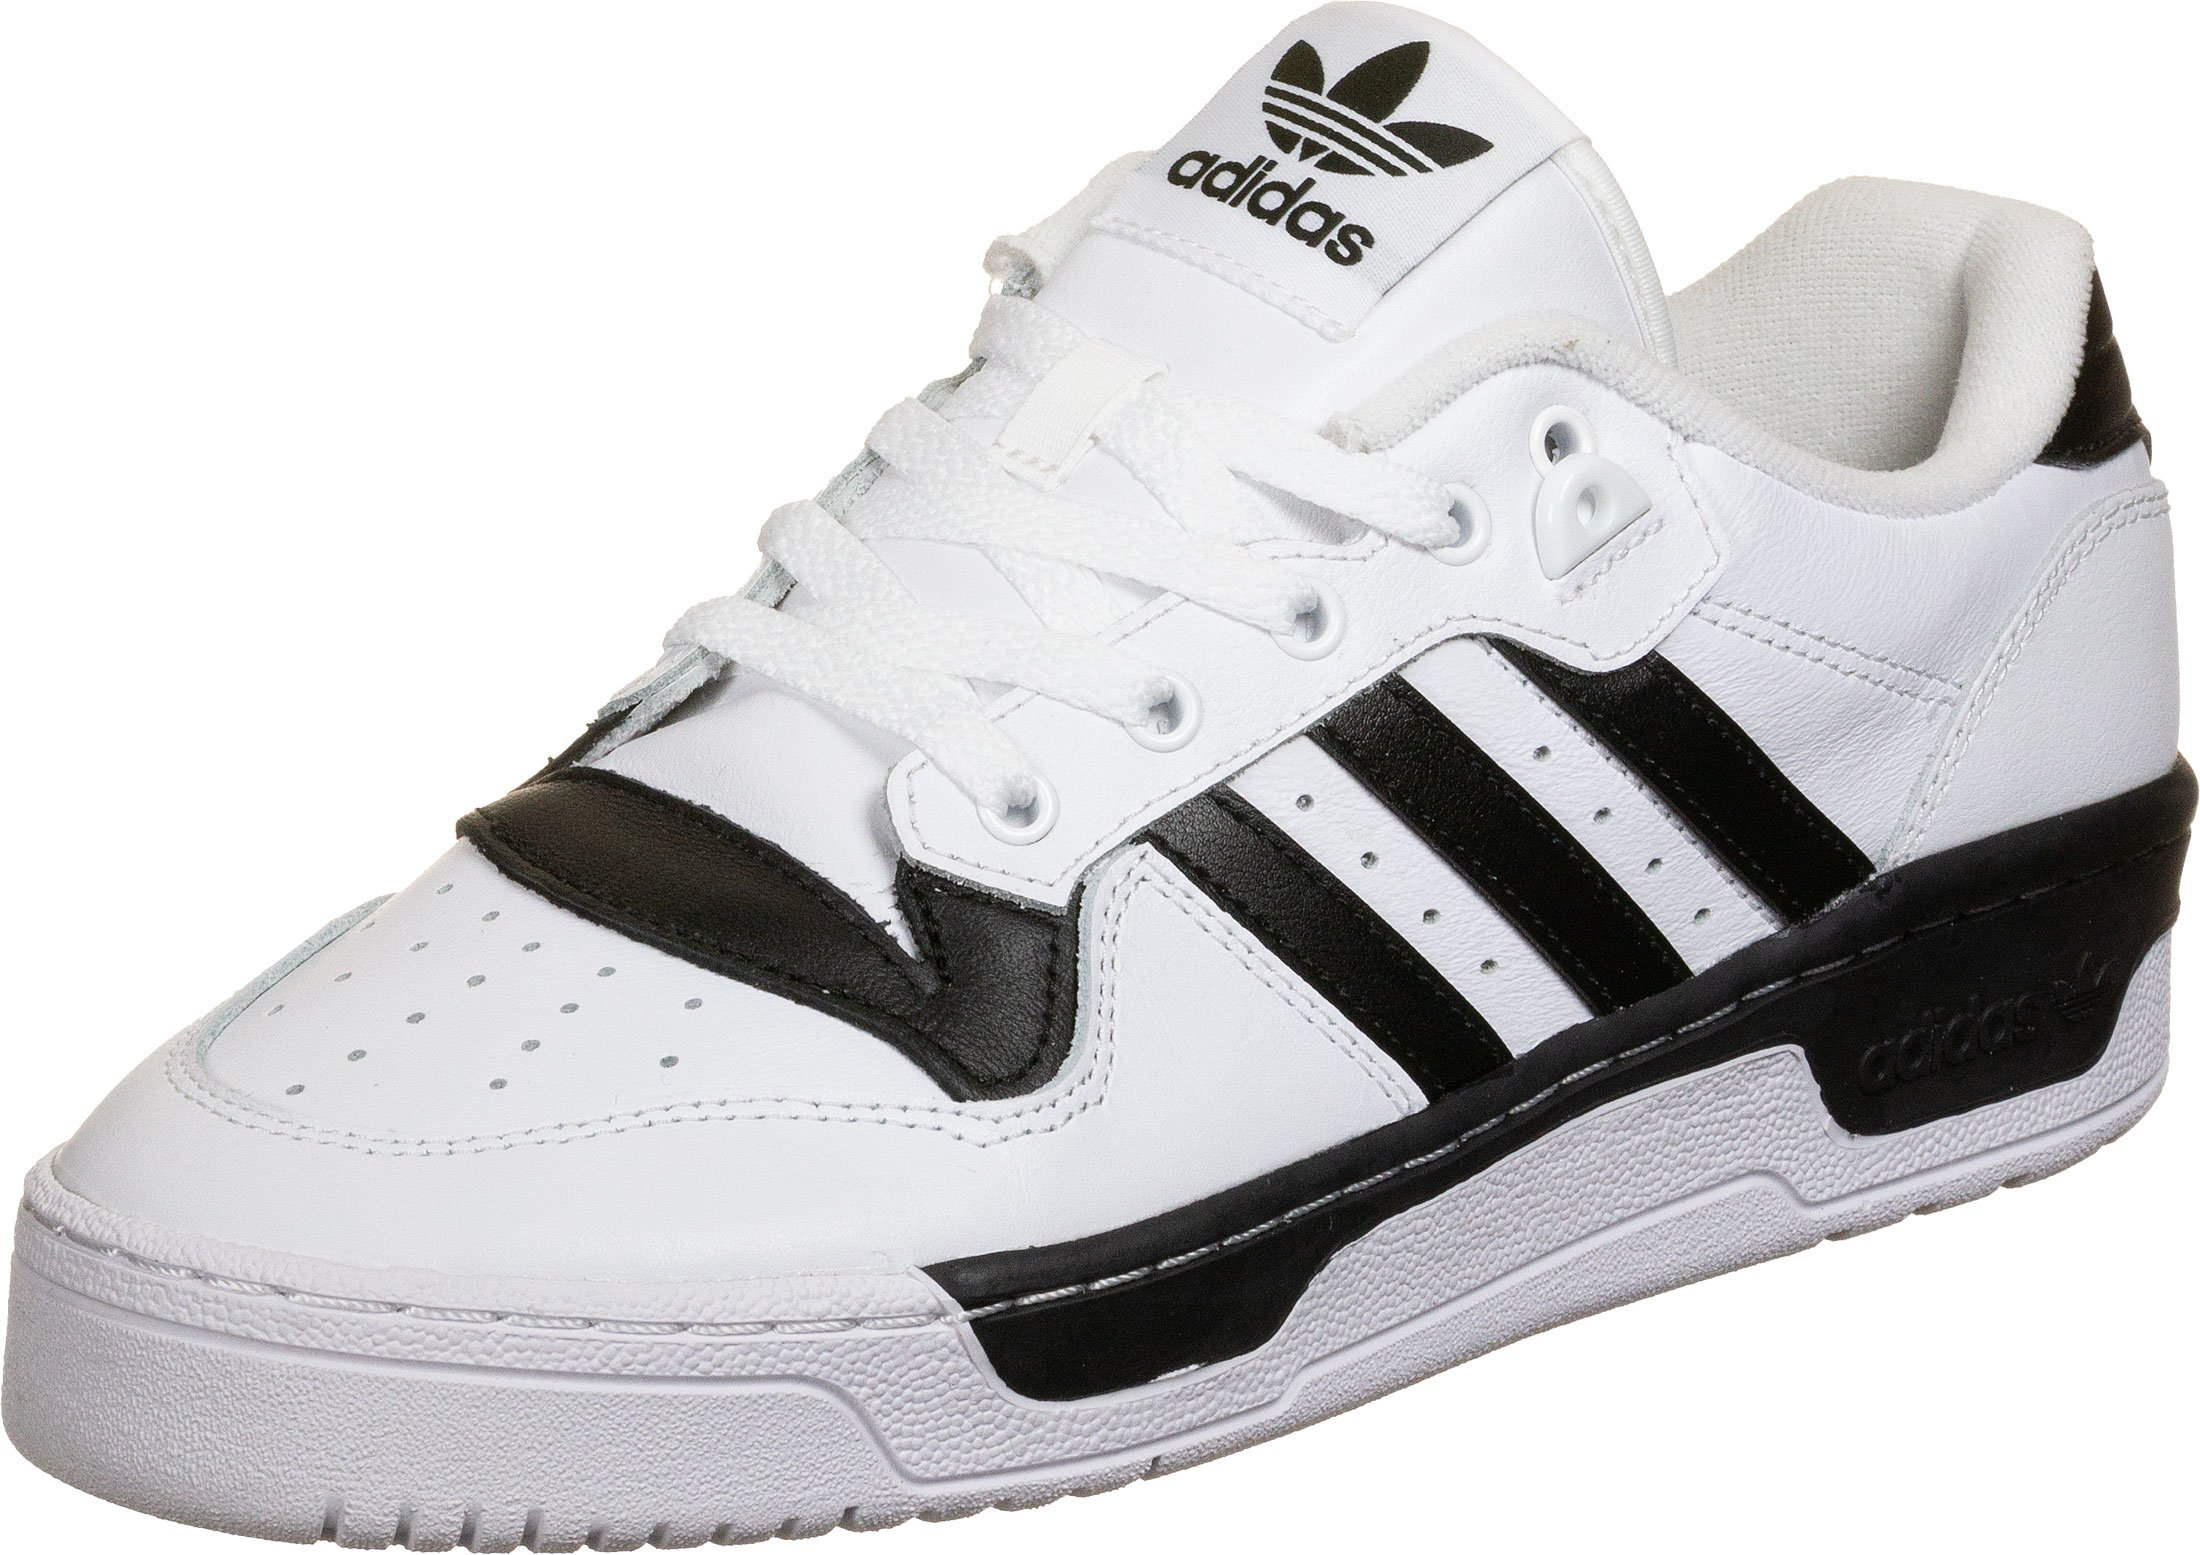 adidas Rivalry Low - Sneakers Low at